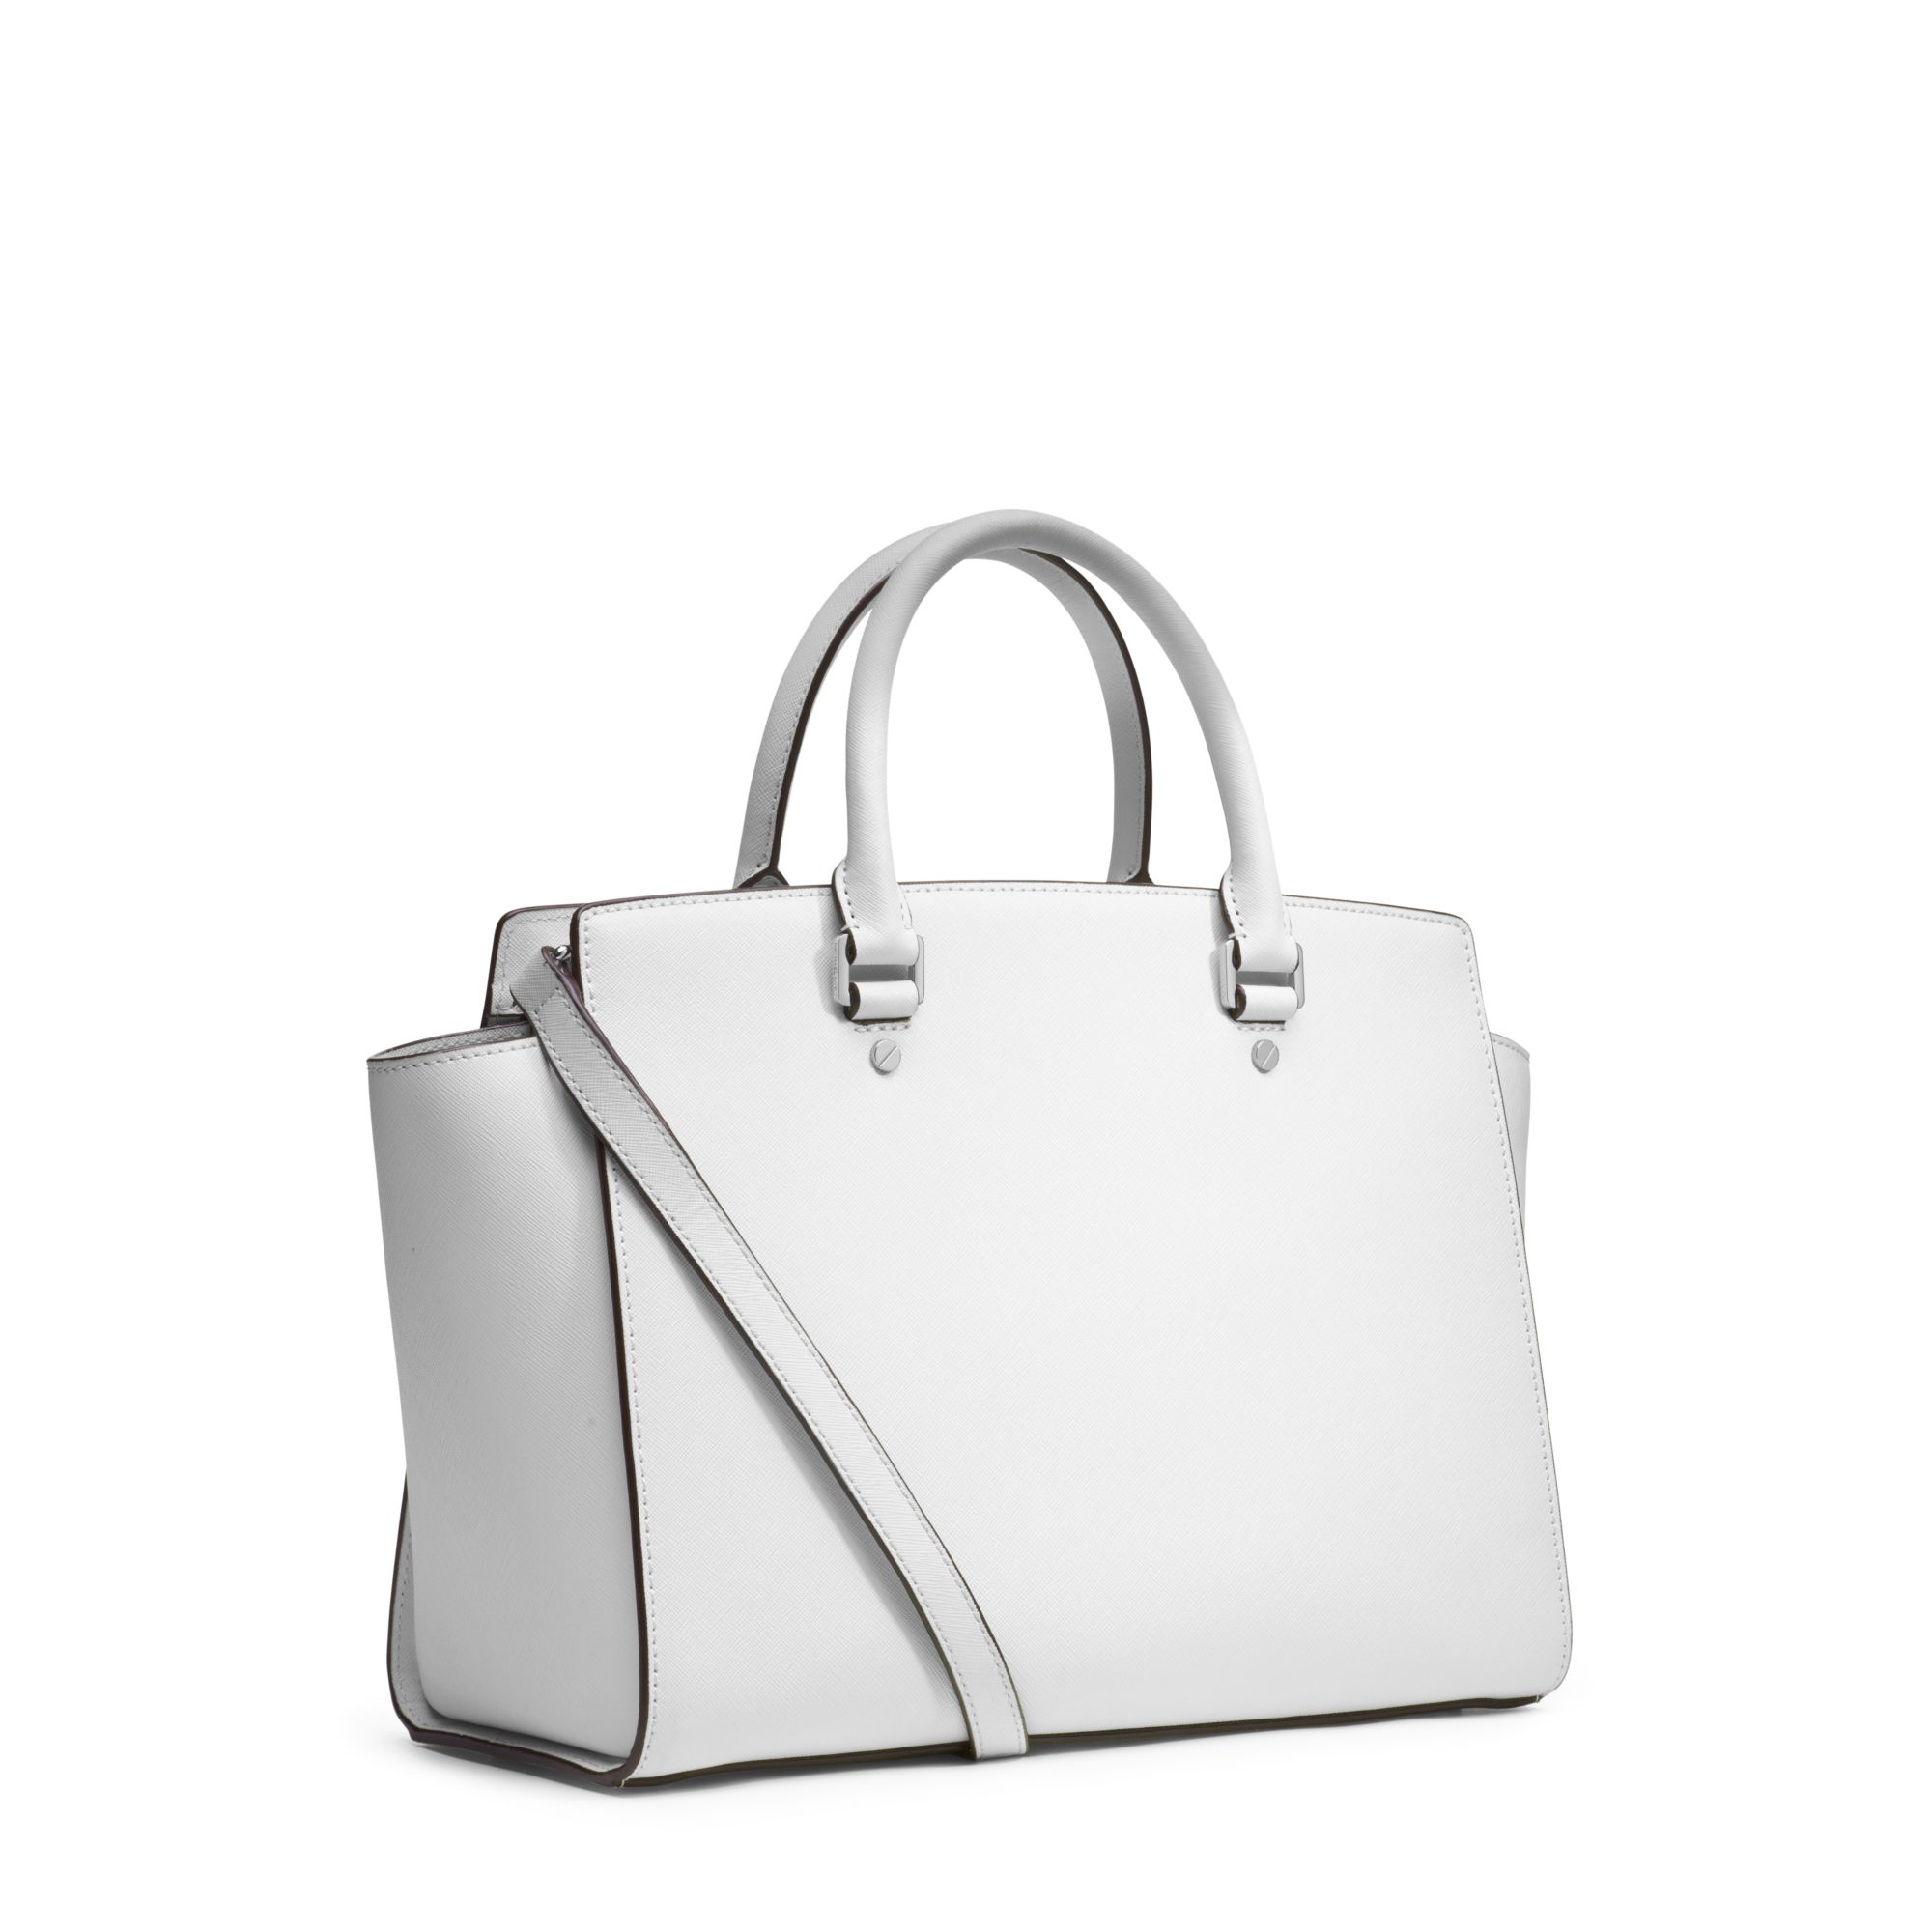 Lyst - Michael Kors Selma Large Saffiano Leather Satchel in White a68f785d31